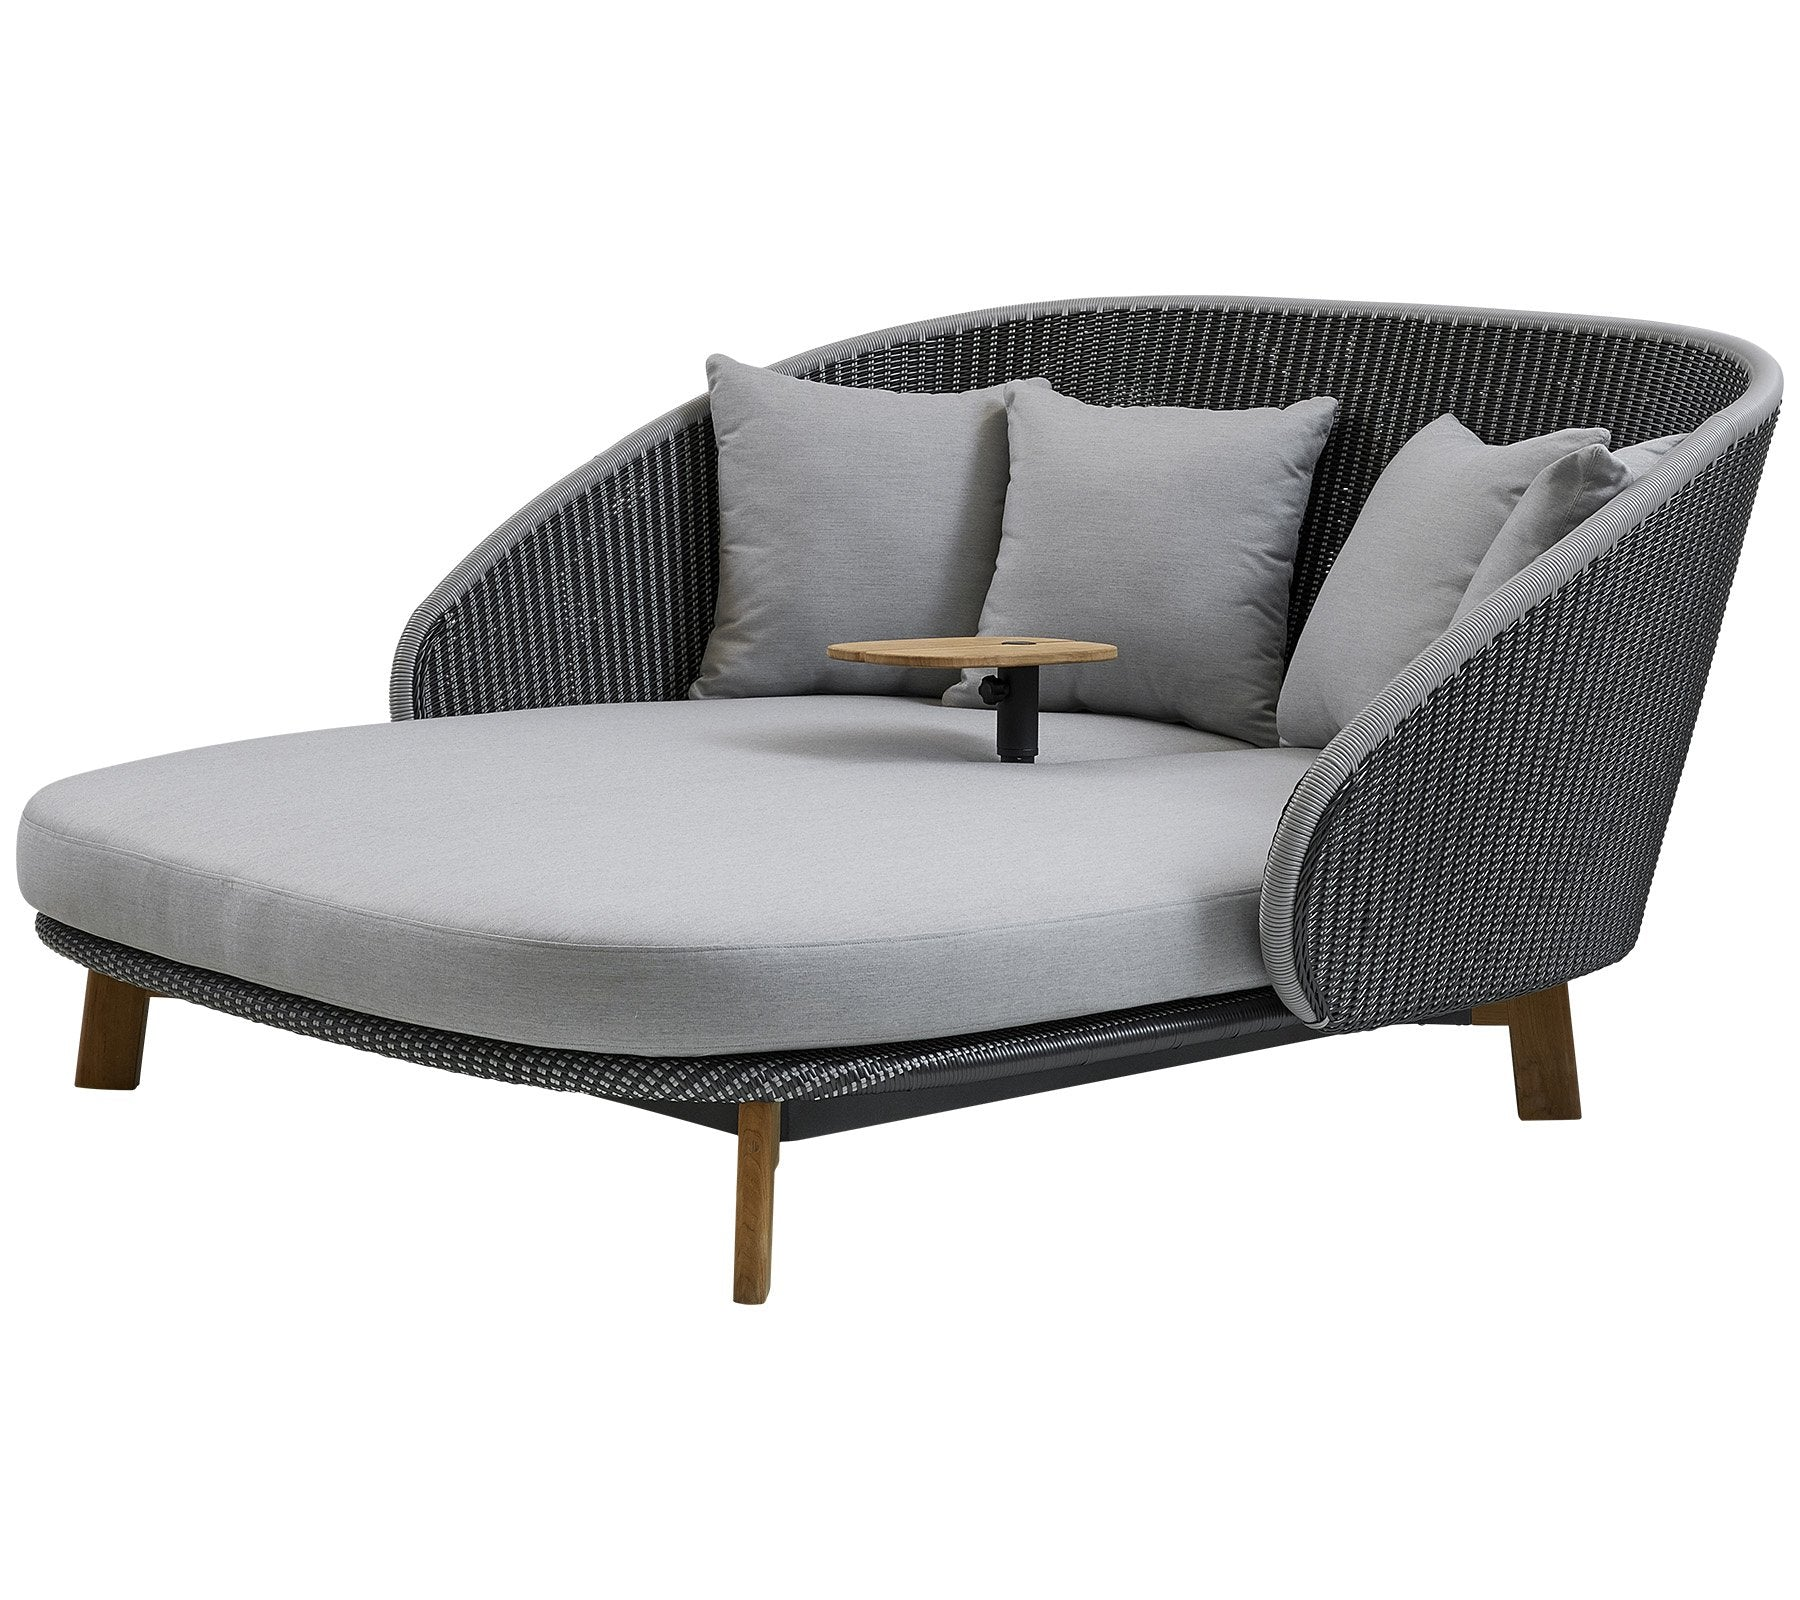 Peacock Daybed w/ Table